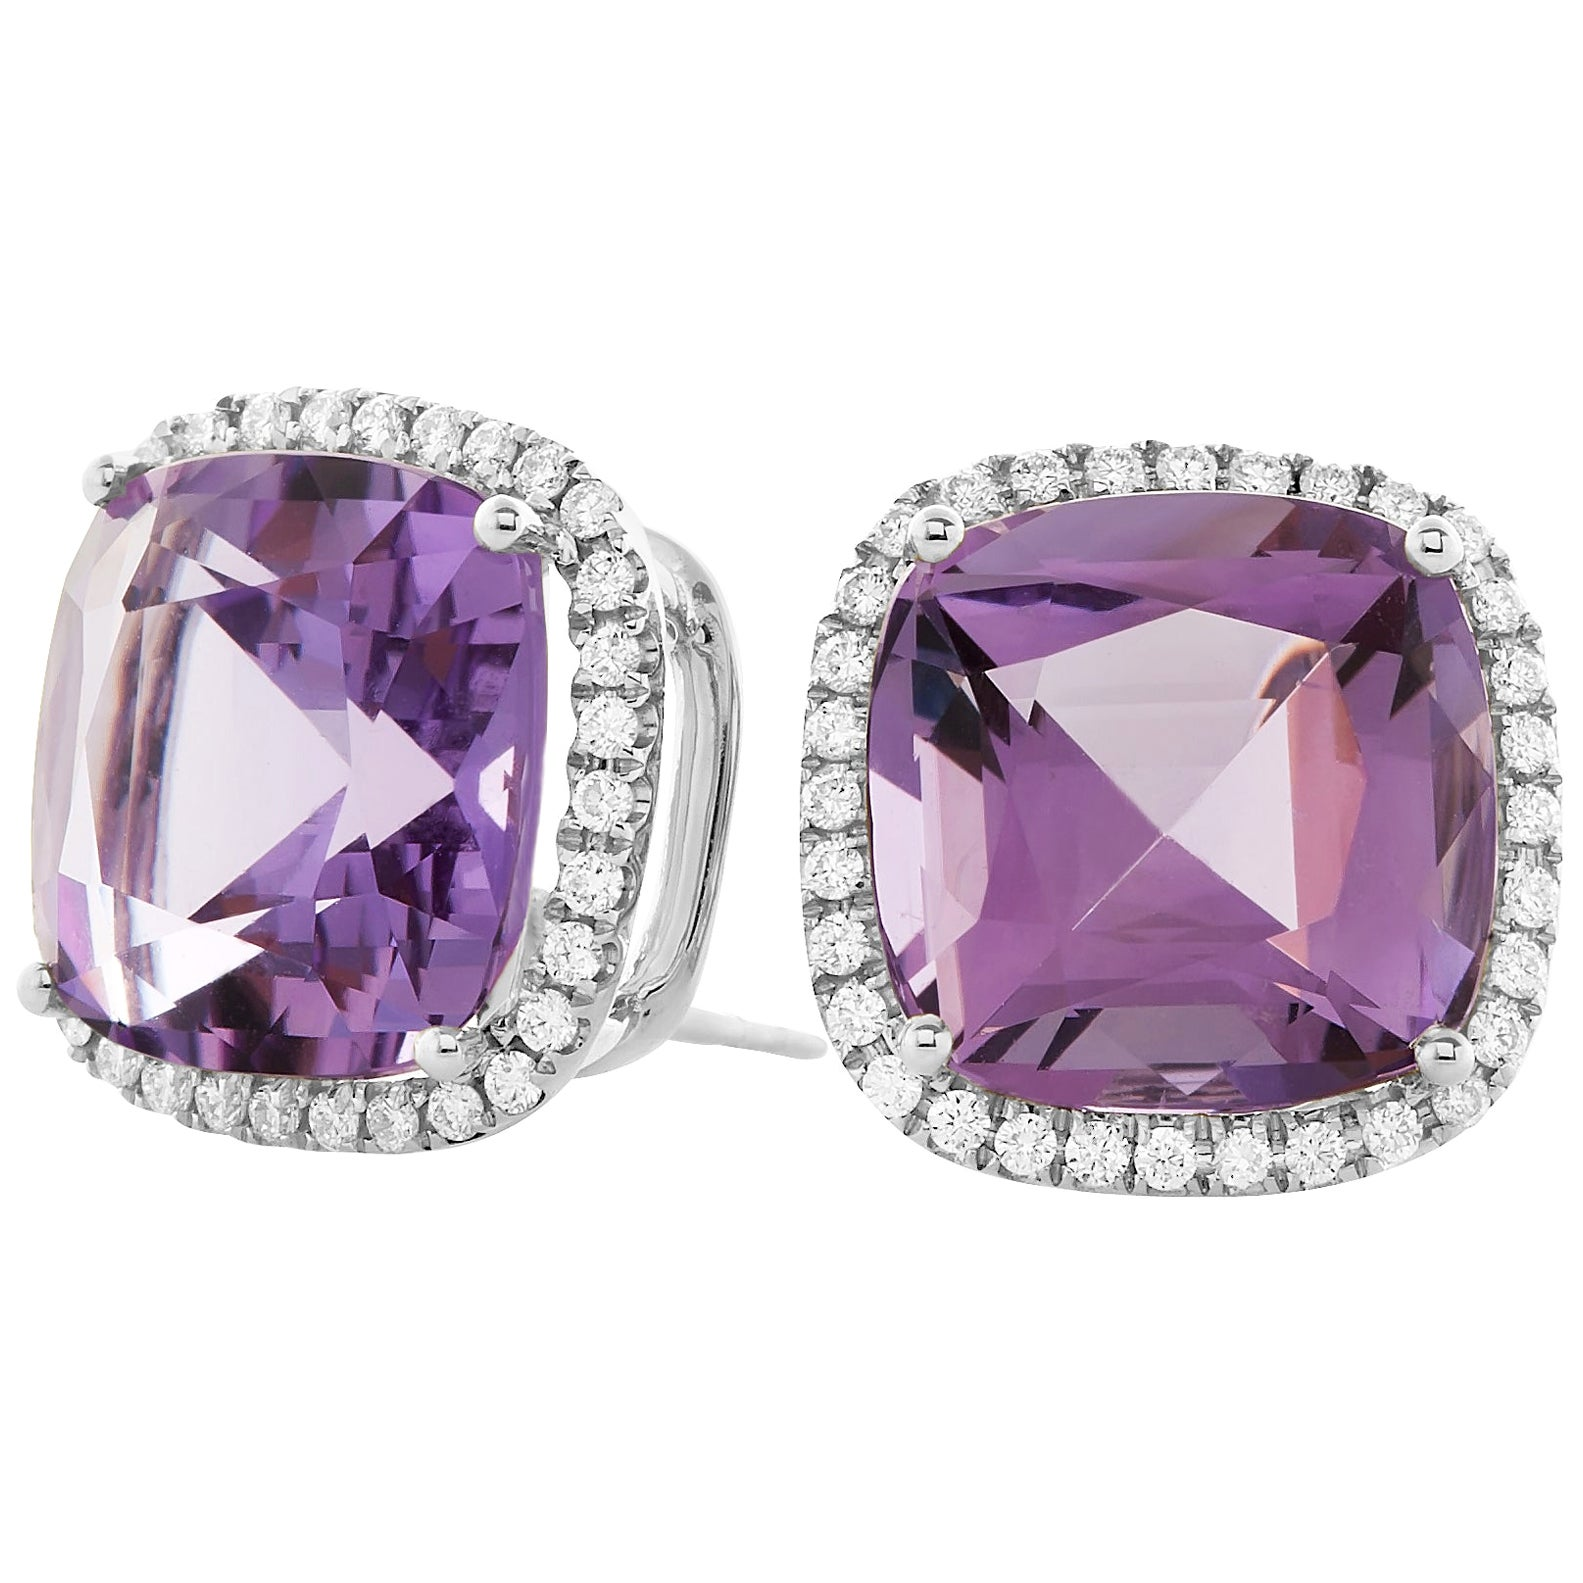 Goshwara Amethyst and Diamond Stud Earrings